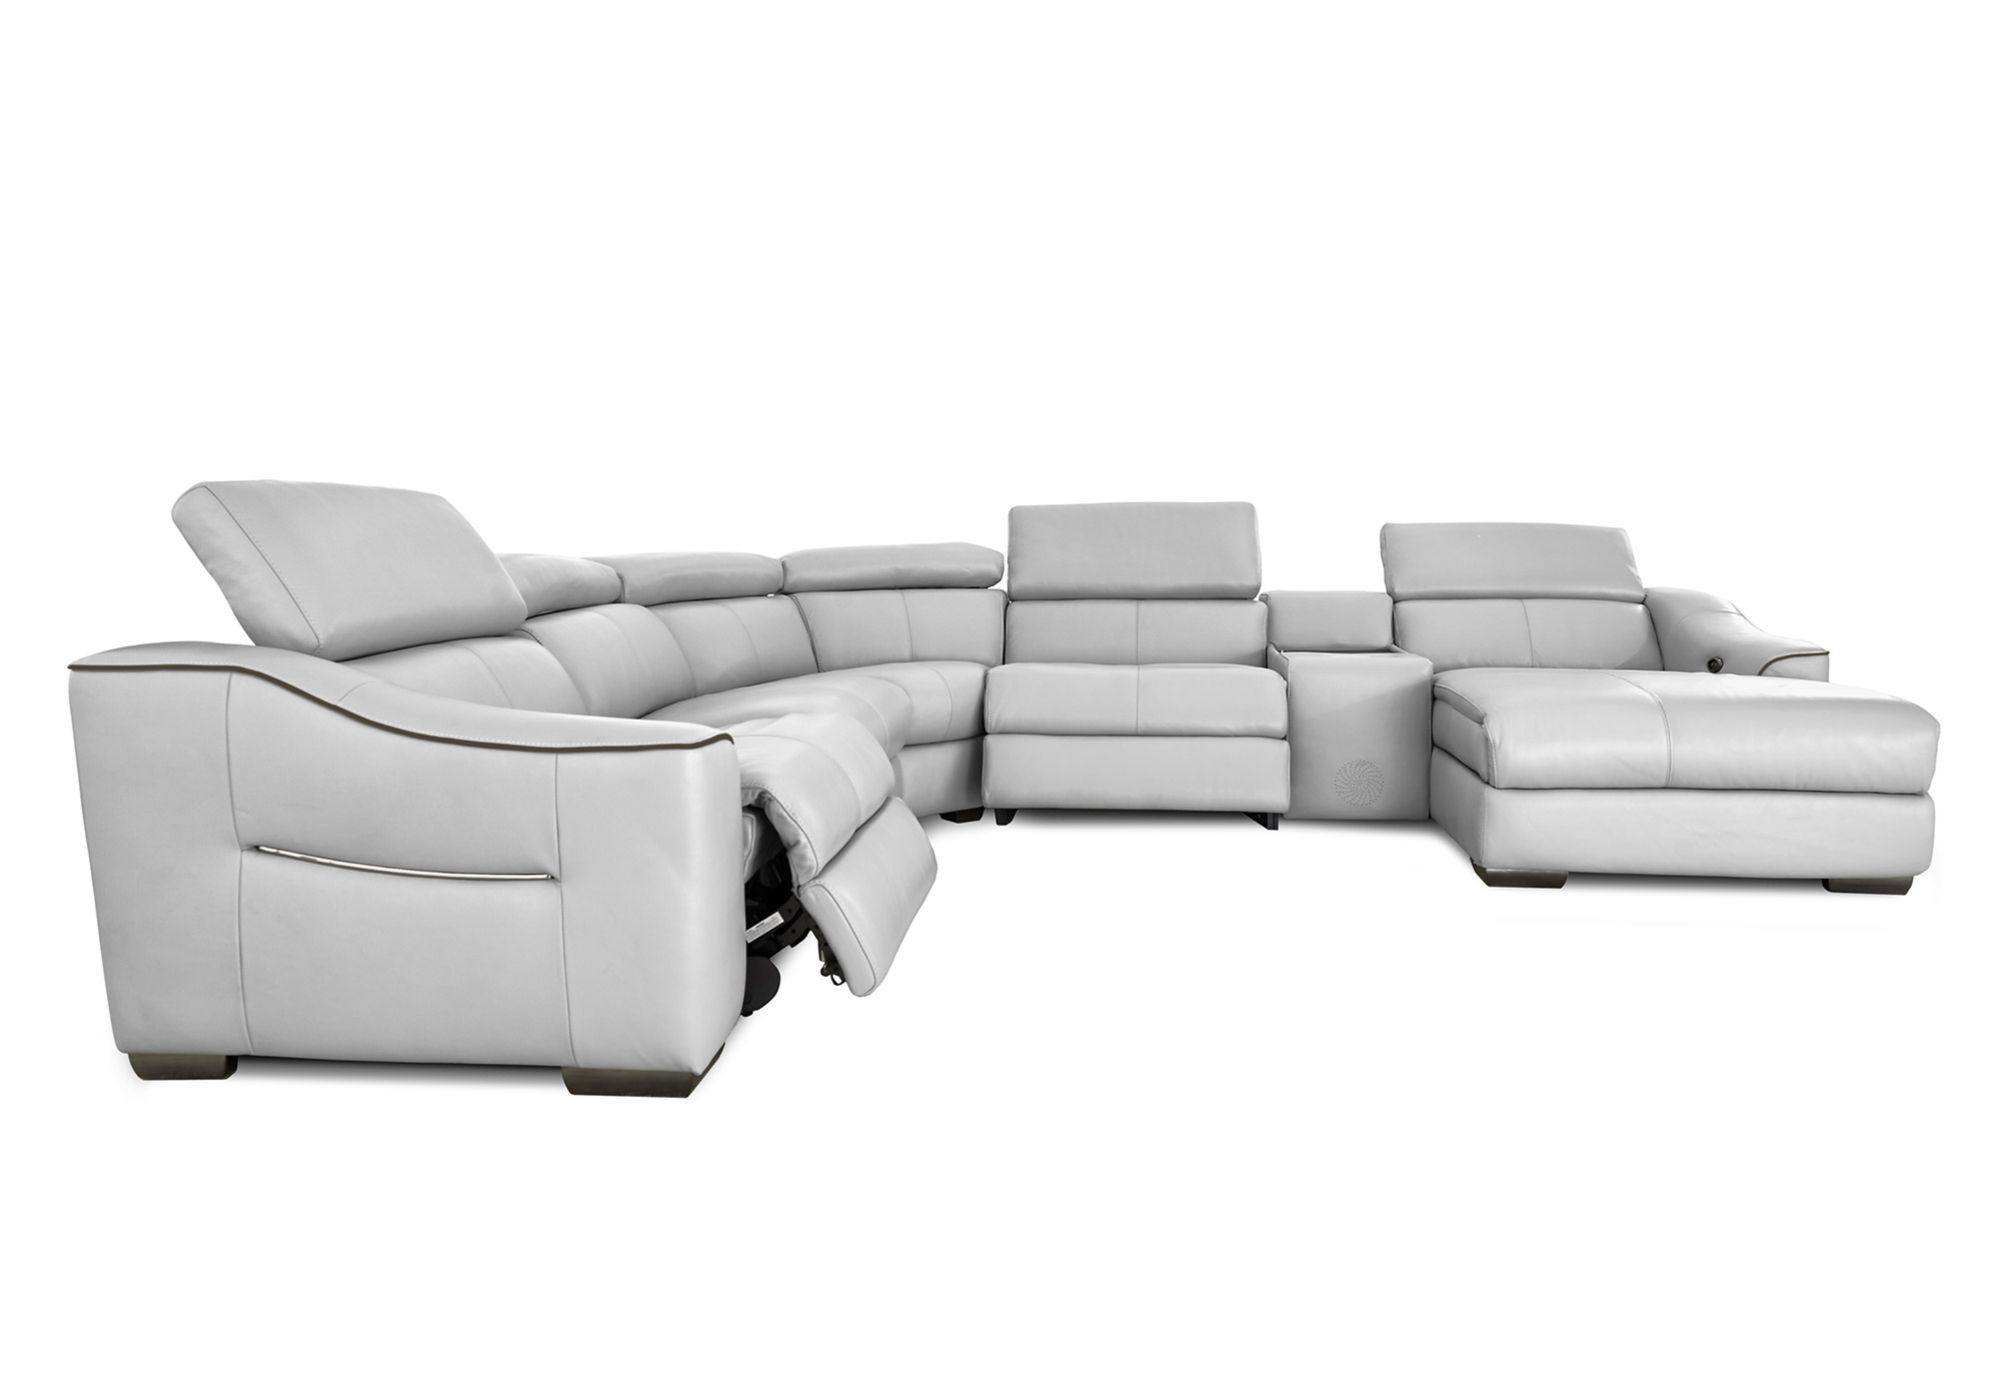 Magnificent Rhf Corner Chaise Sofa Elixir Gorgeous Living Room Lamtechconsult Wood Chair Design Ideas Lamtechconsultcom